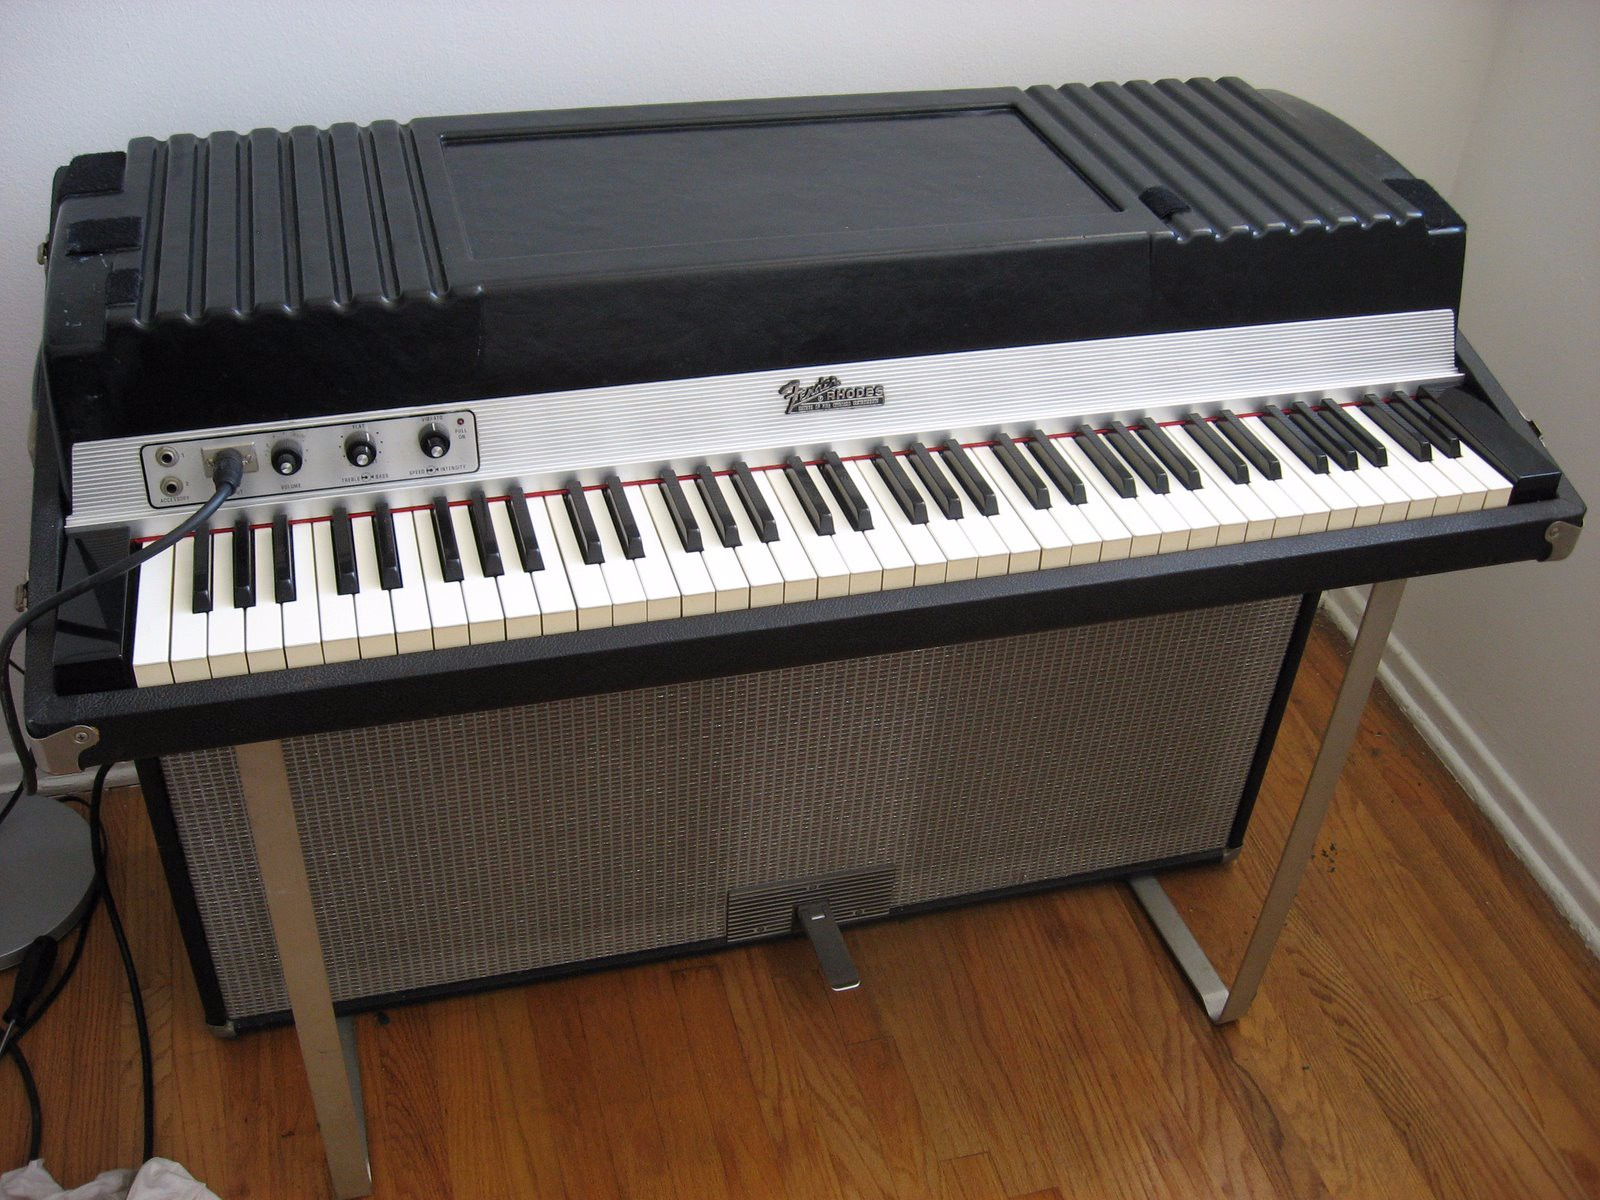 1974 modified fender rhodes piano fender rhodes la. Black Bedroom Furniture Sets. Home Design Ideas